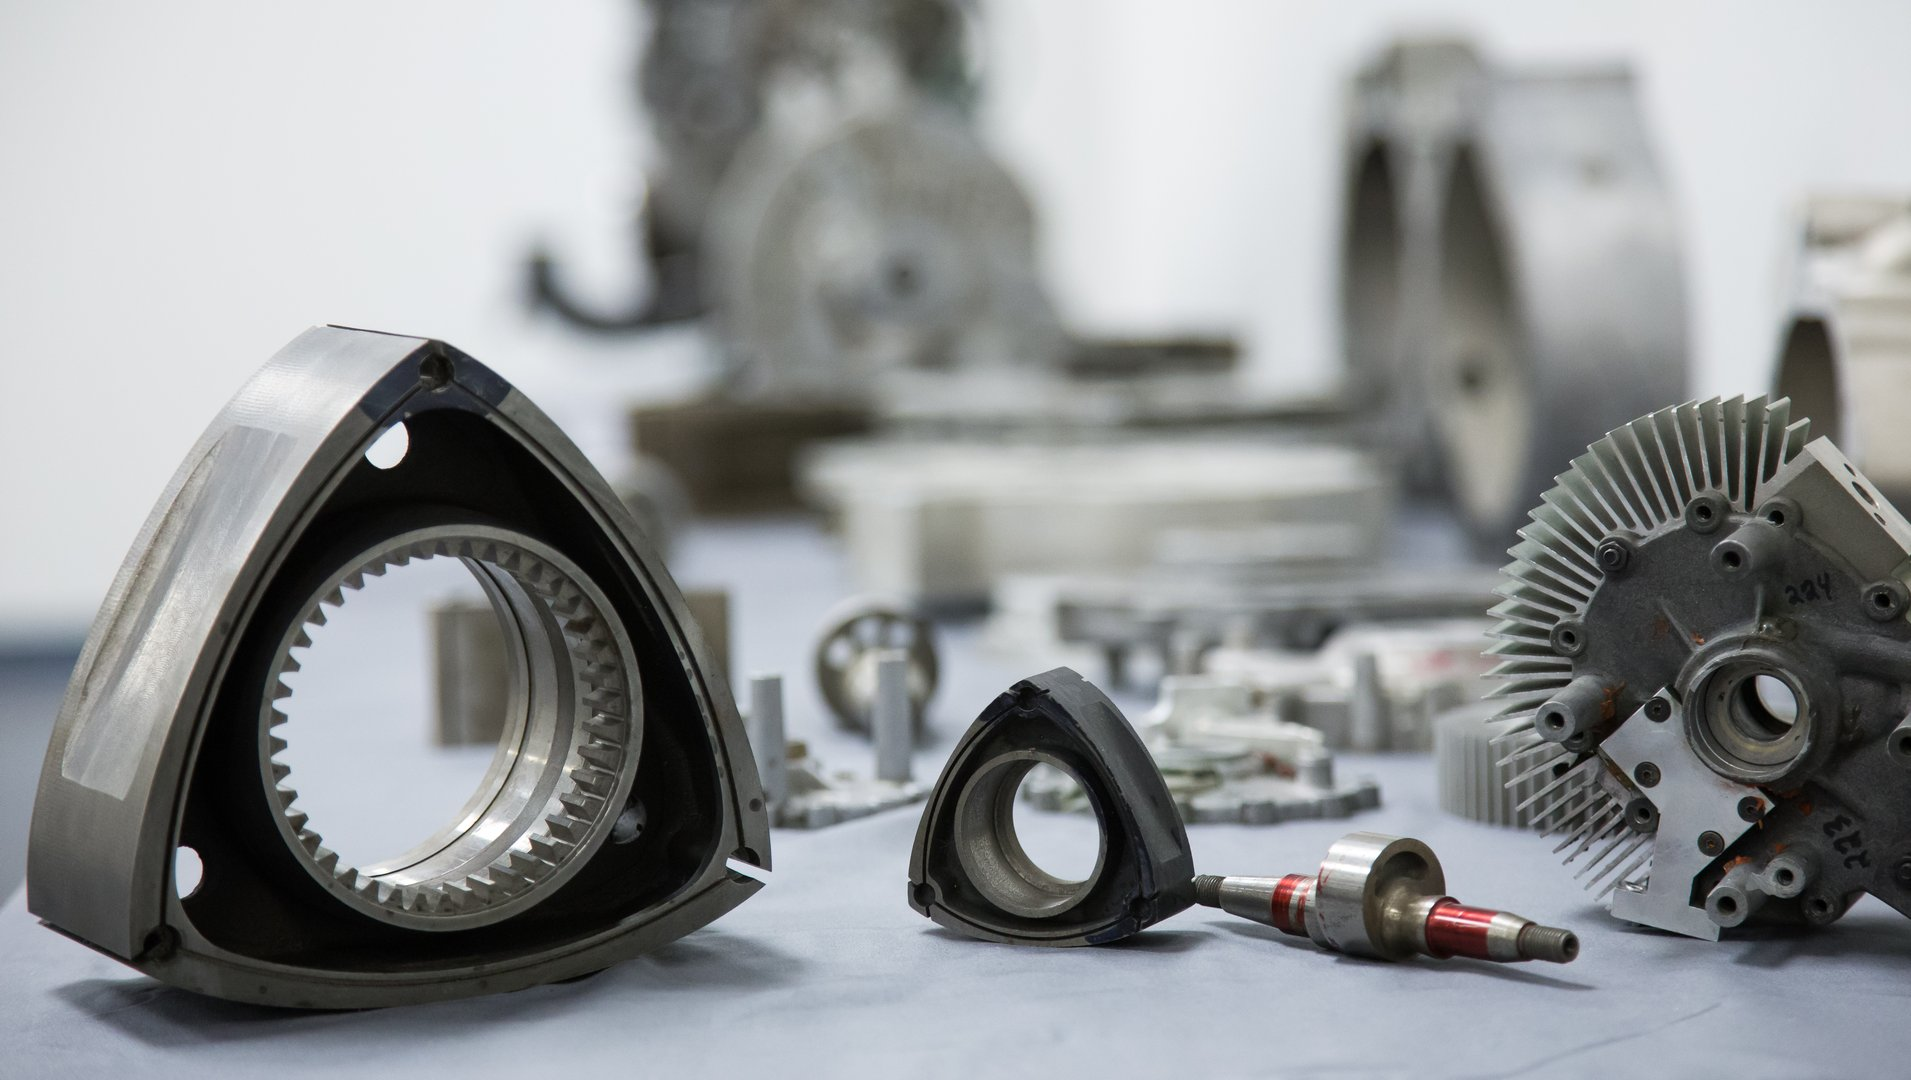 Rotapower Rotary Engine Components